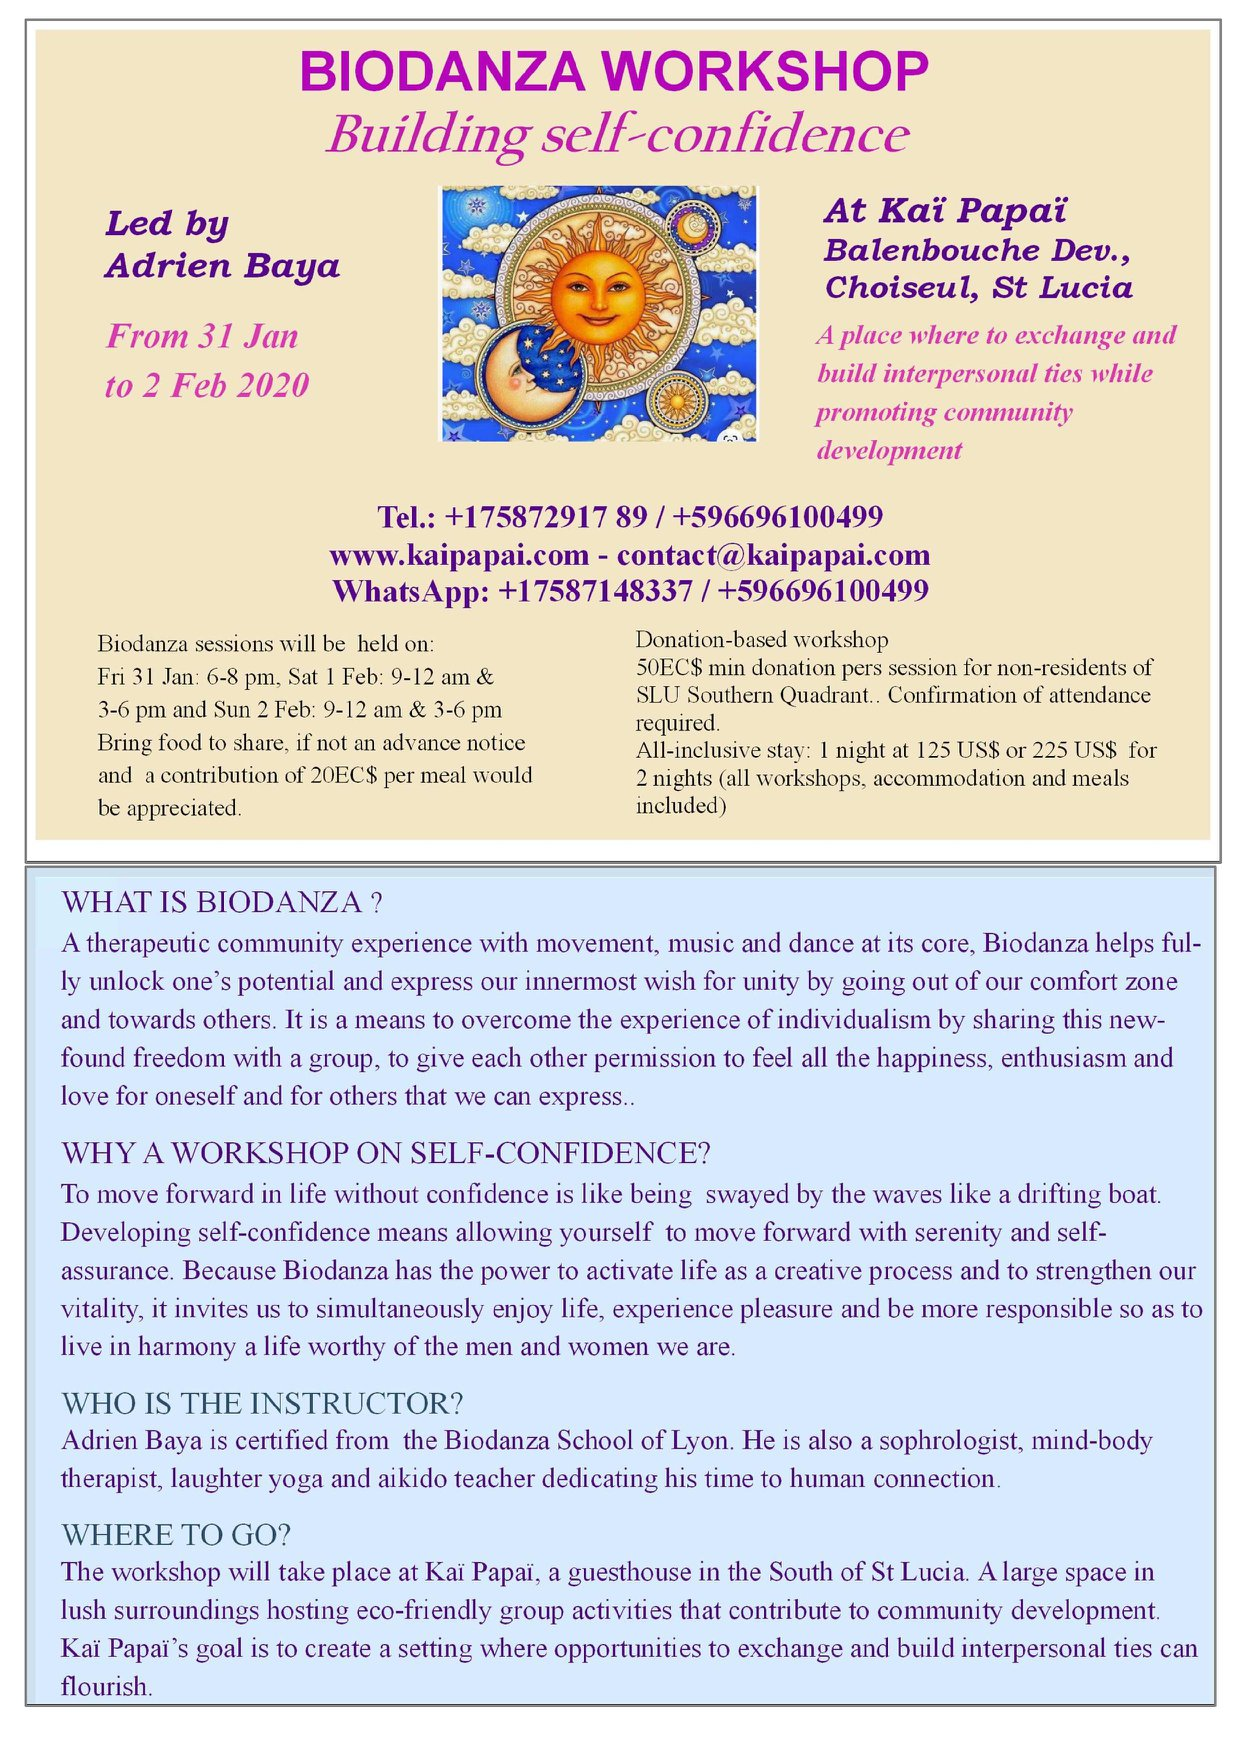 biodanza workshop - building self - confidence, Kai Papai choiseul